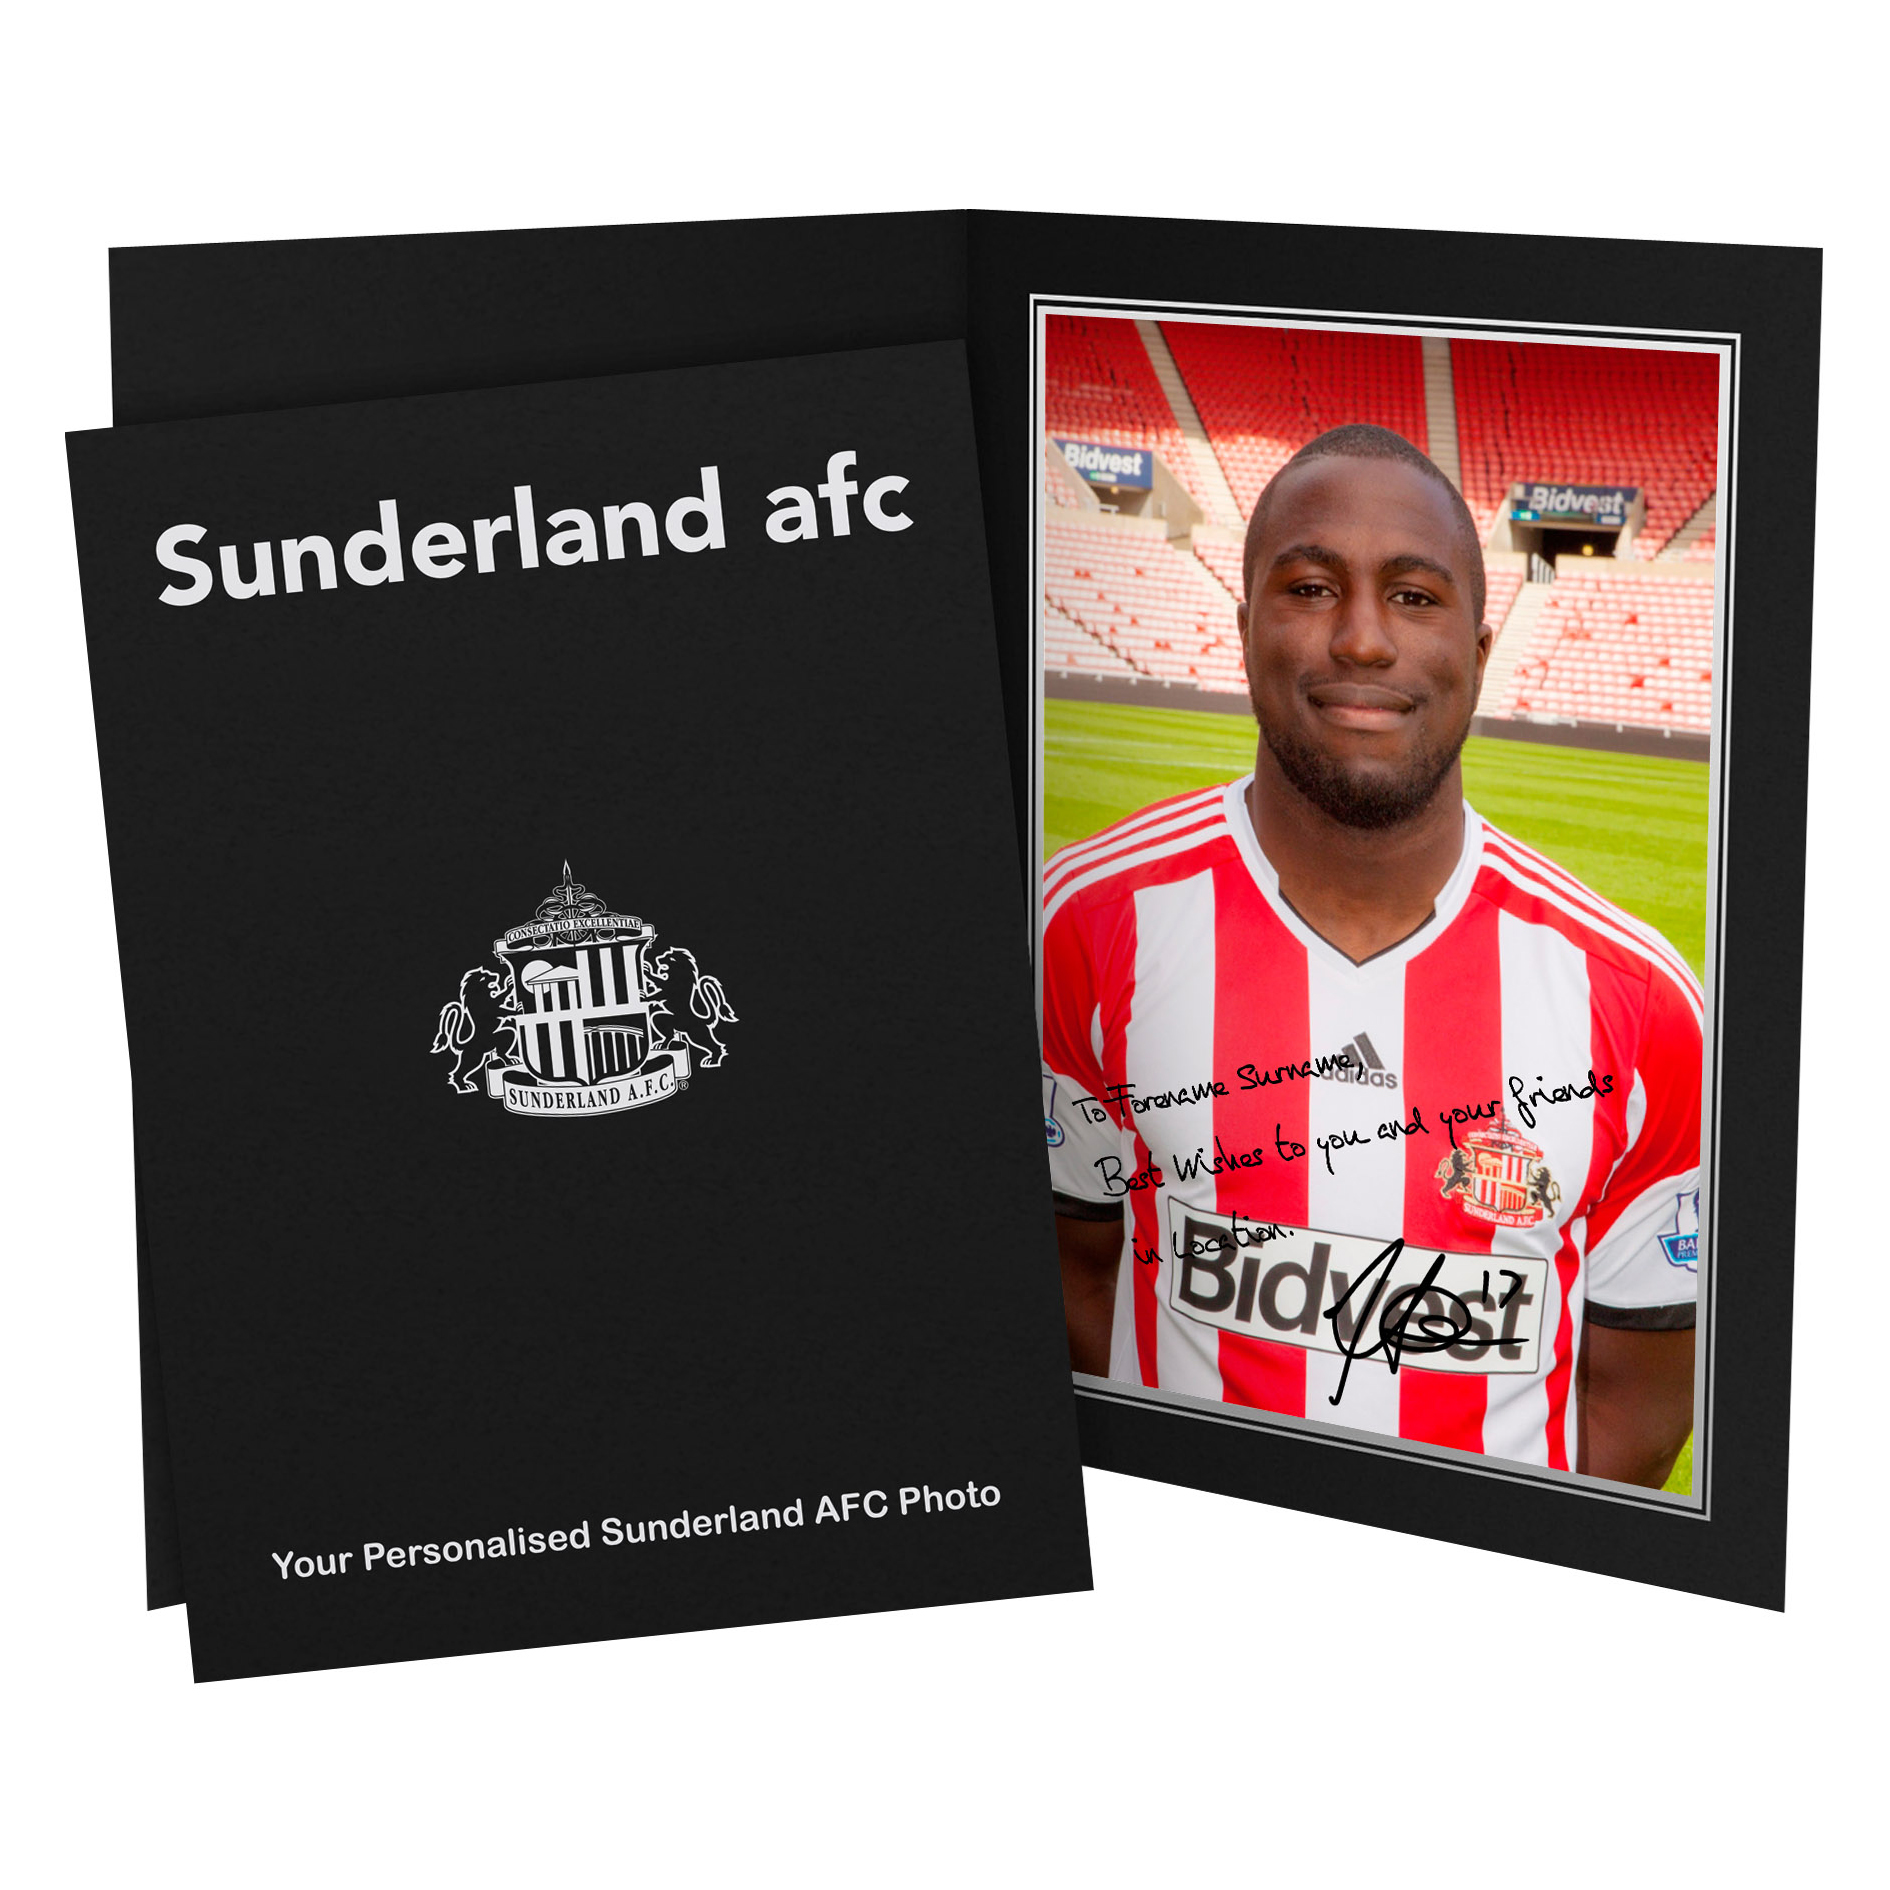 Sunderland Personalised Signature Photo in Presentation Folder - Altidore